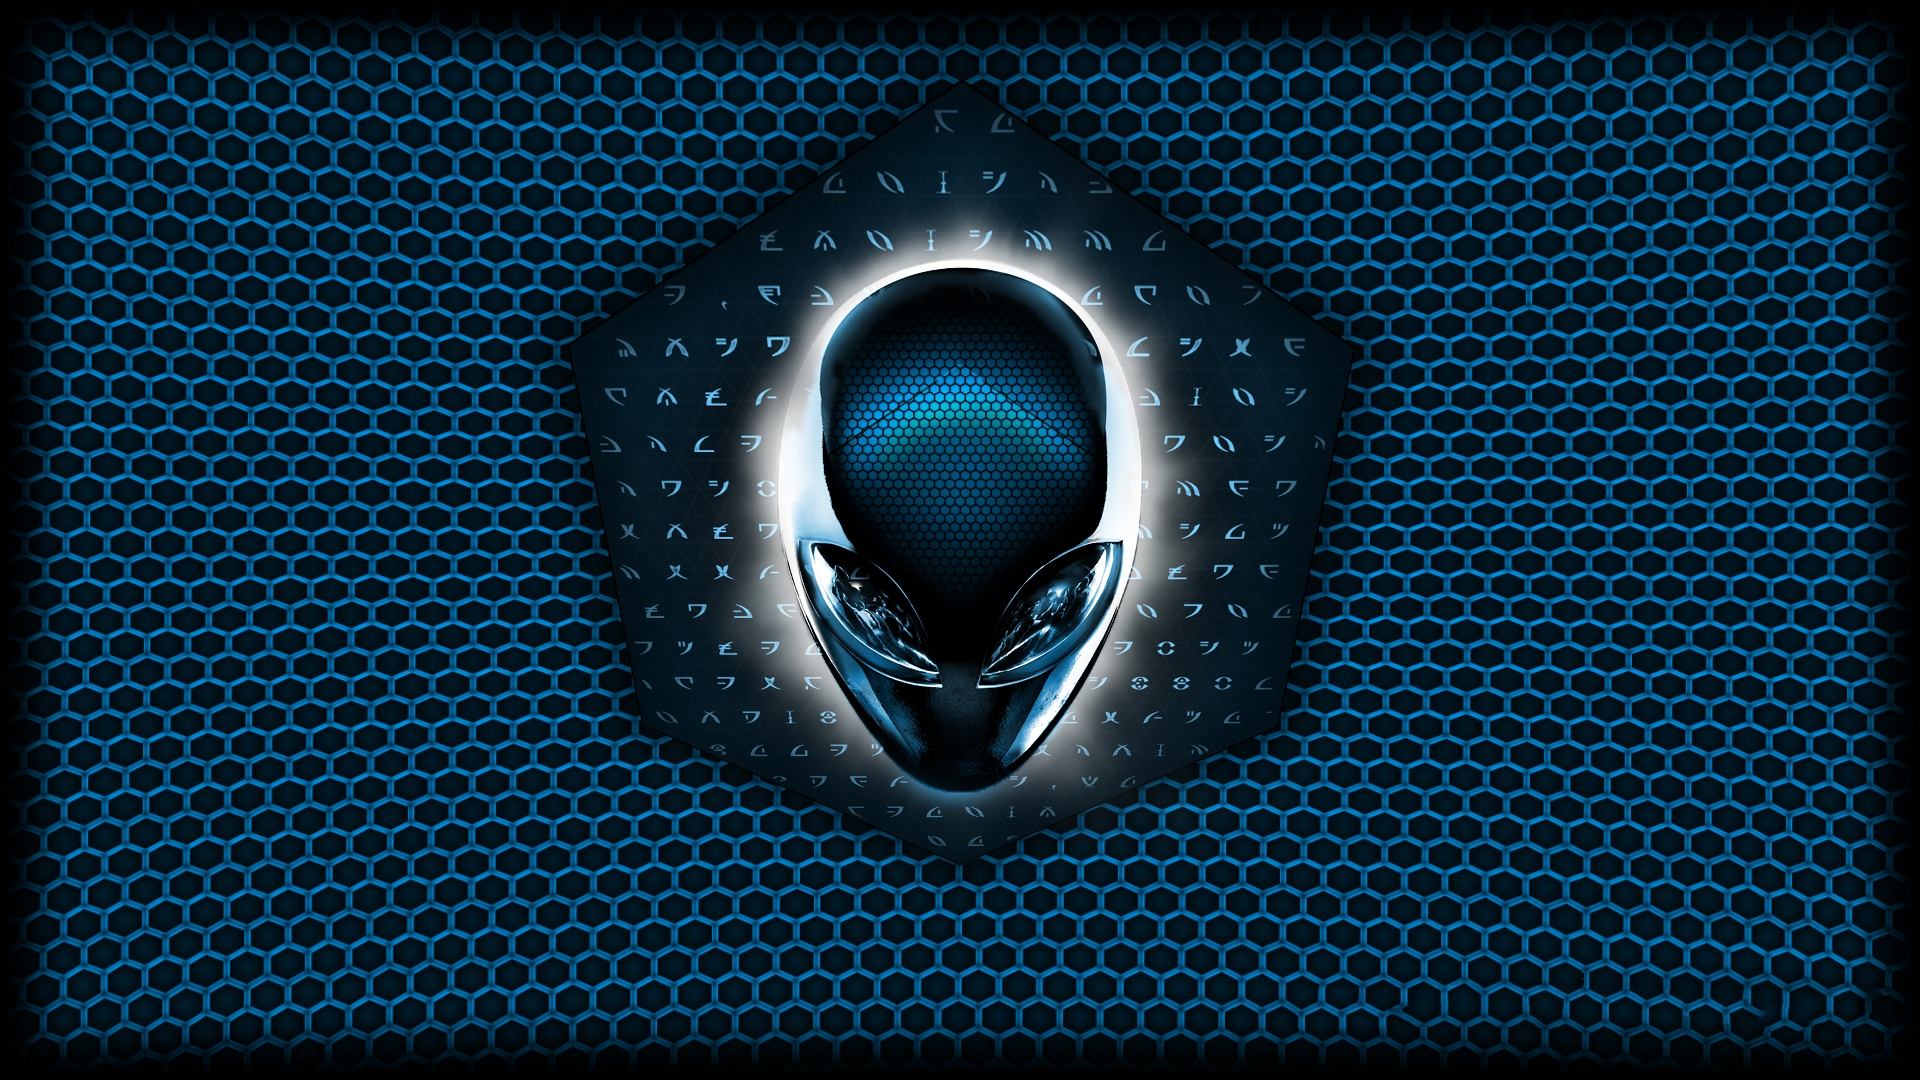 Alienware Hd Wallpapers Pictures Images HD Wallpapers Download Free Images Wallpaper [1000image.com]